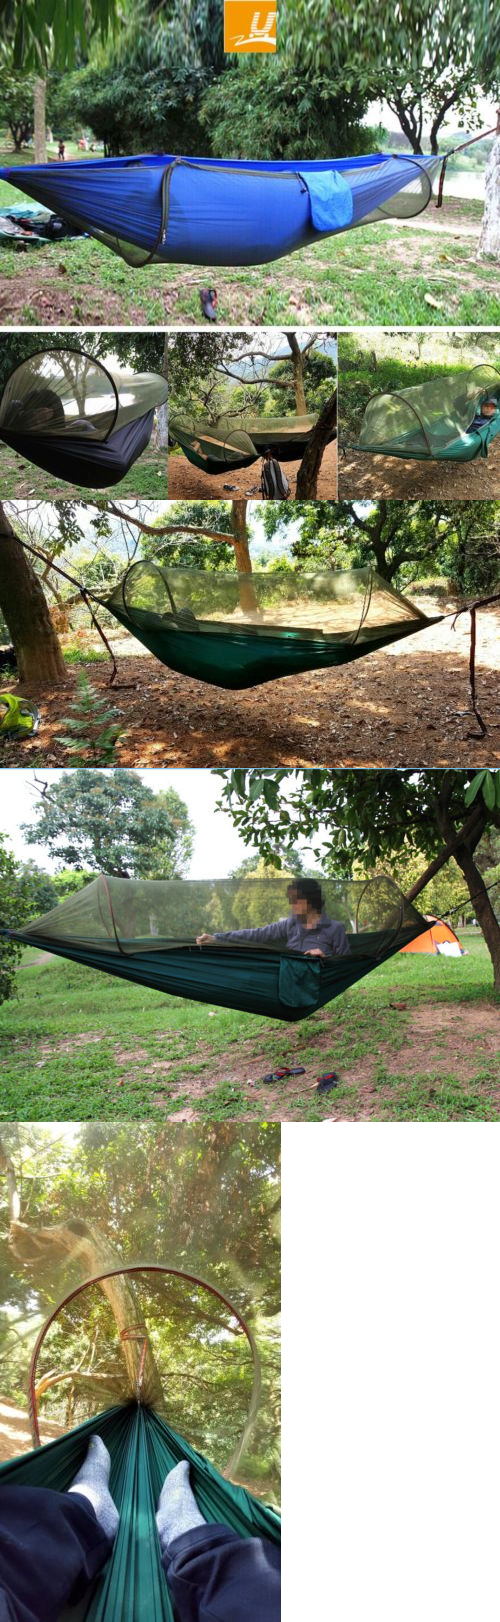 Medium image of hammocks 159030  latest version  camping bushcraft jungle hammock tent replacement   mosquito